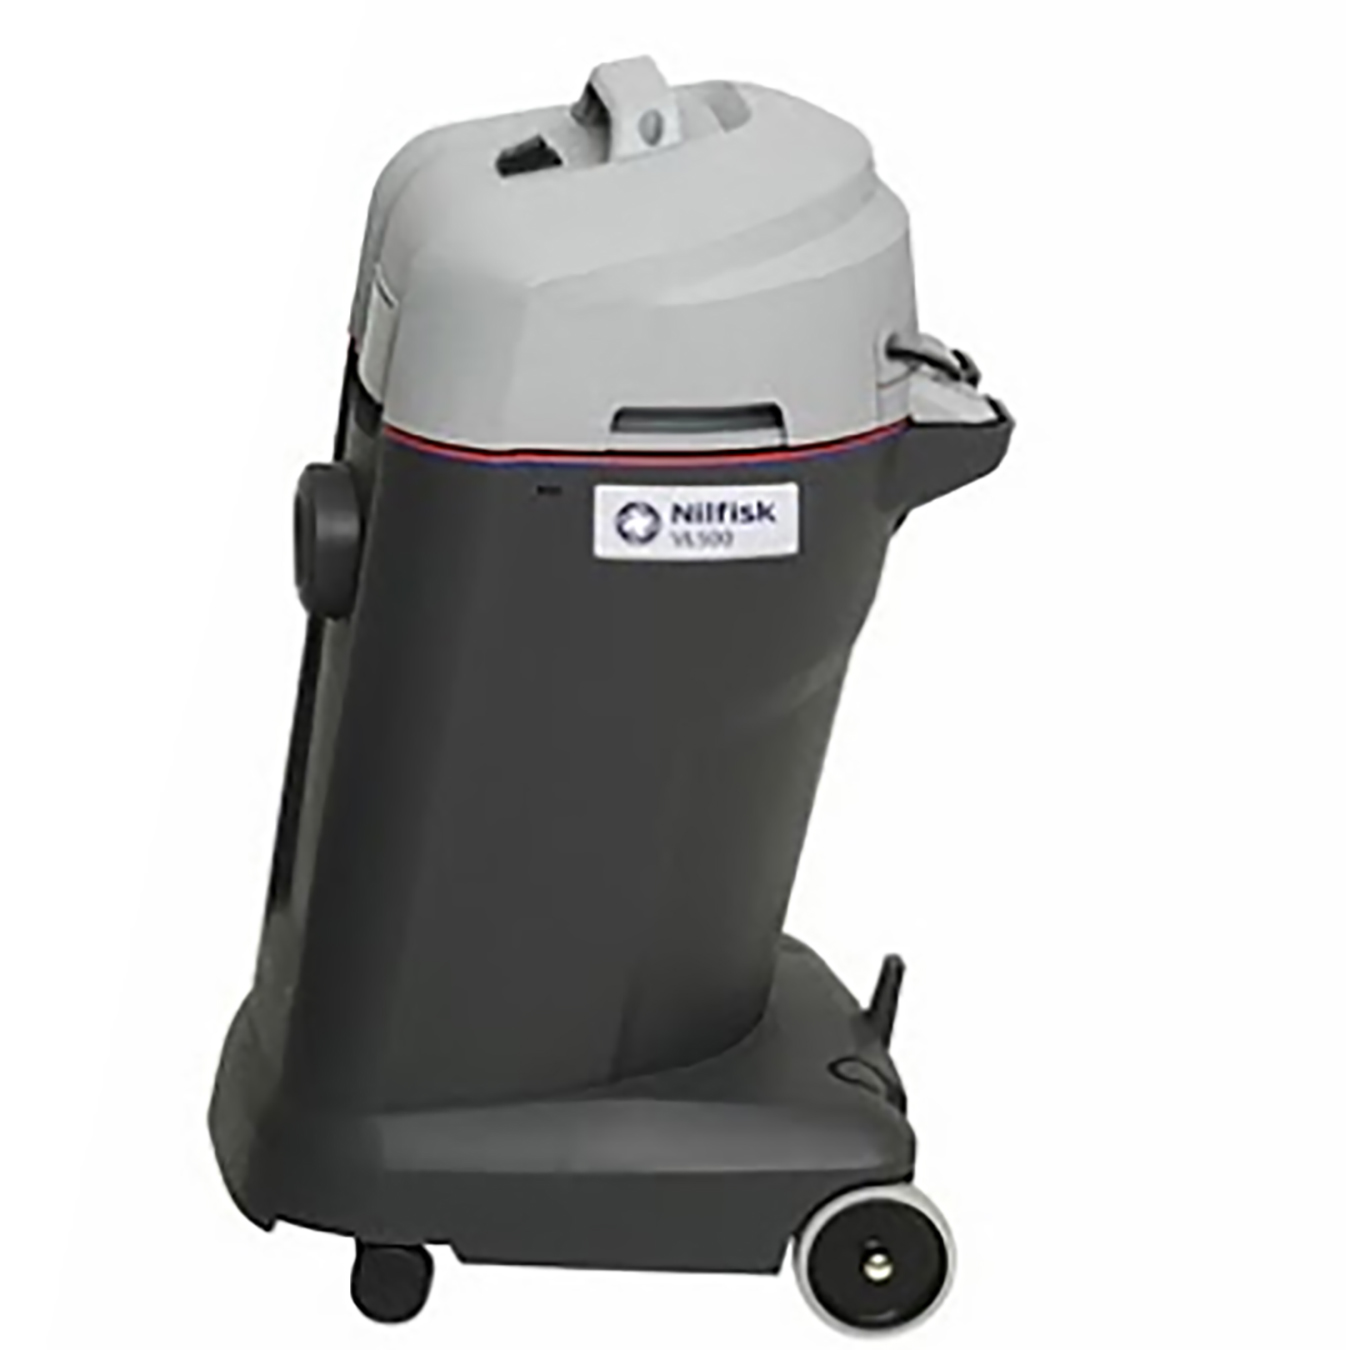 Advance VL500 35 Wet/Dry - 9 gal